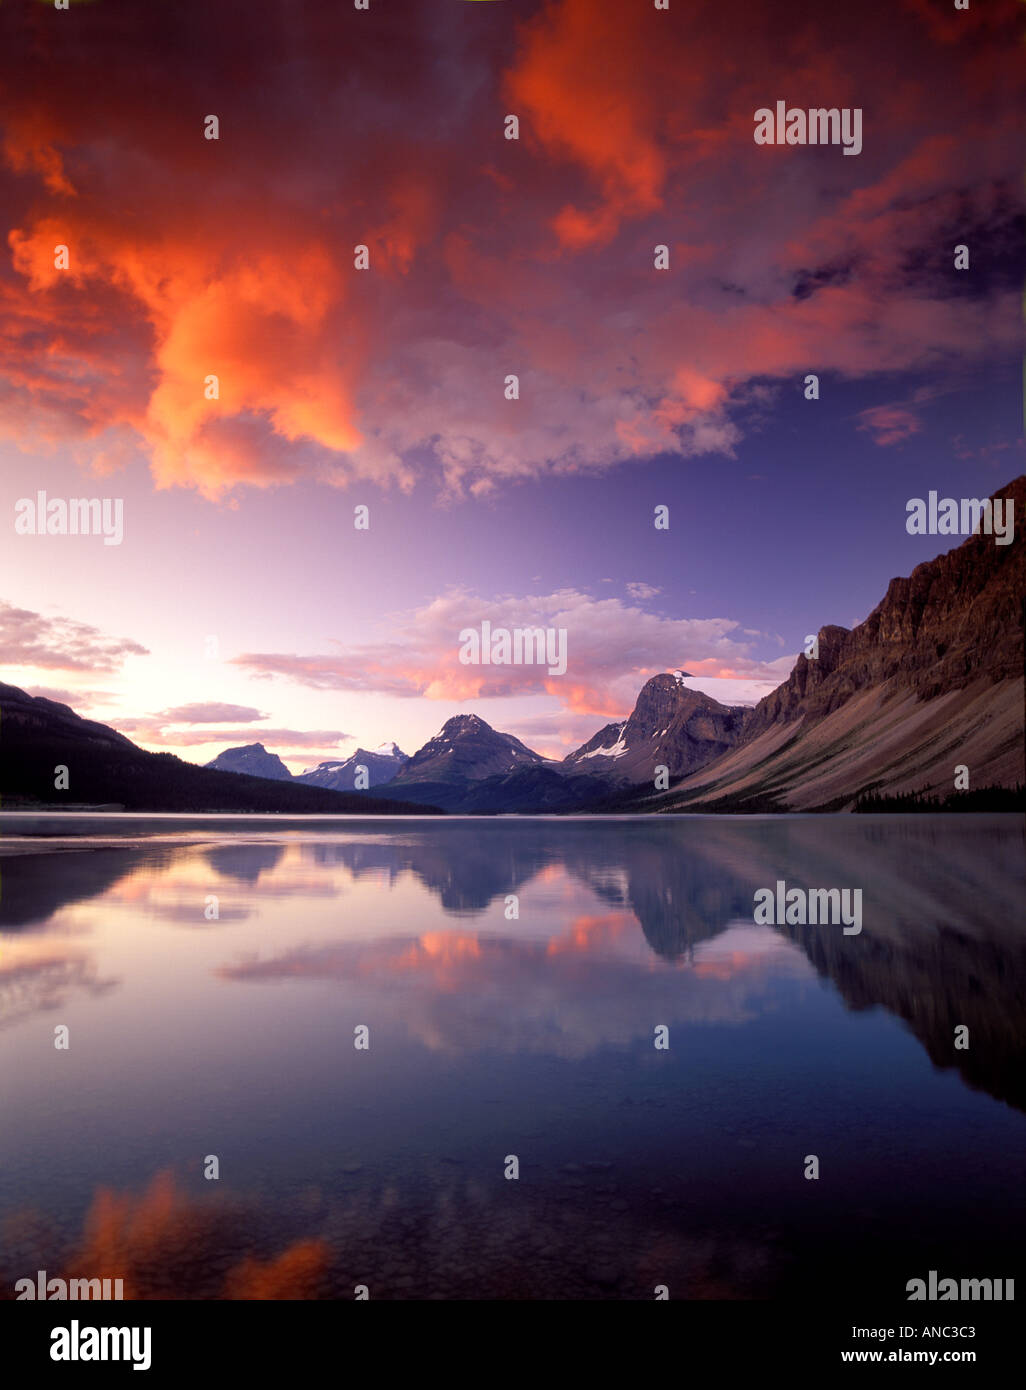 M00419M tiff Sunrise clouds over Bow Lake with reflection Banff National Park Alberta Canada - Stock Image